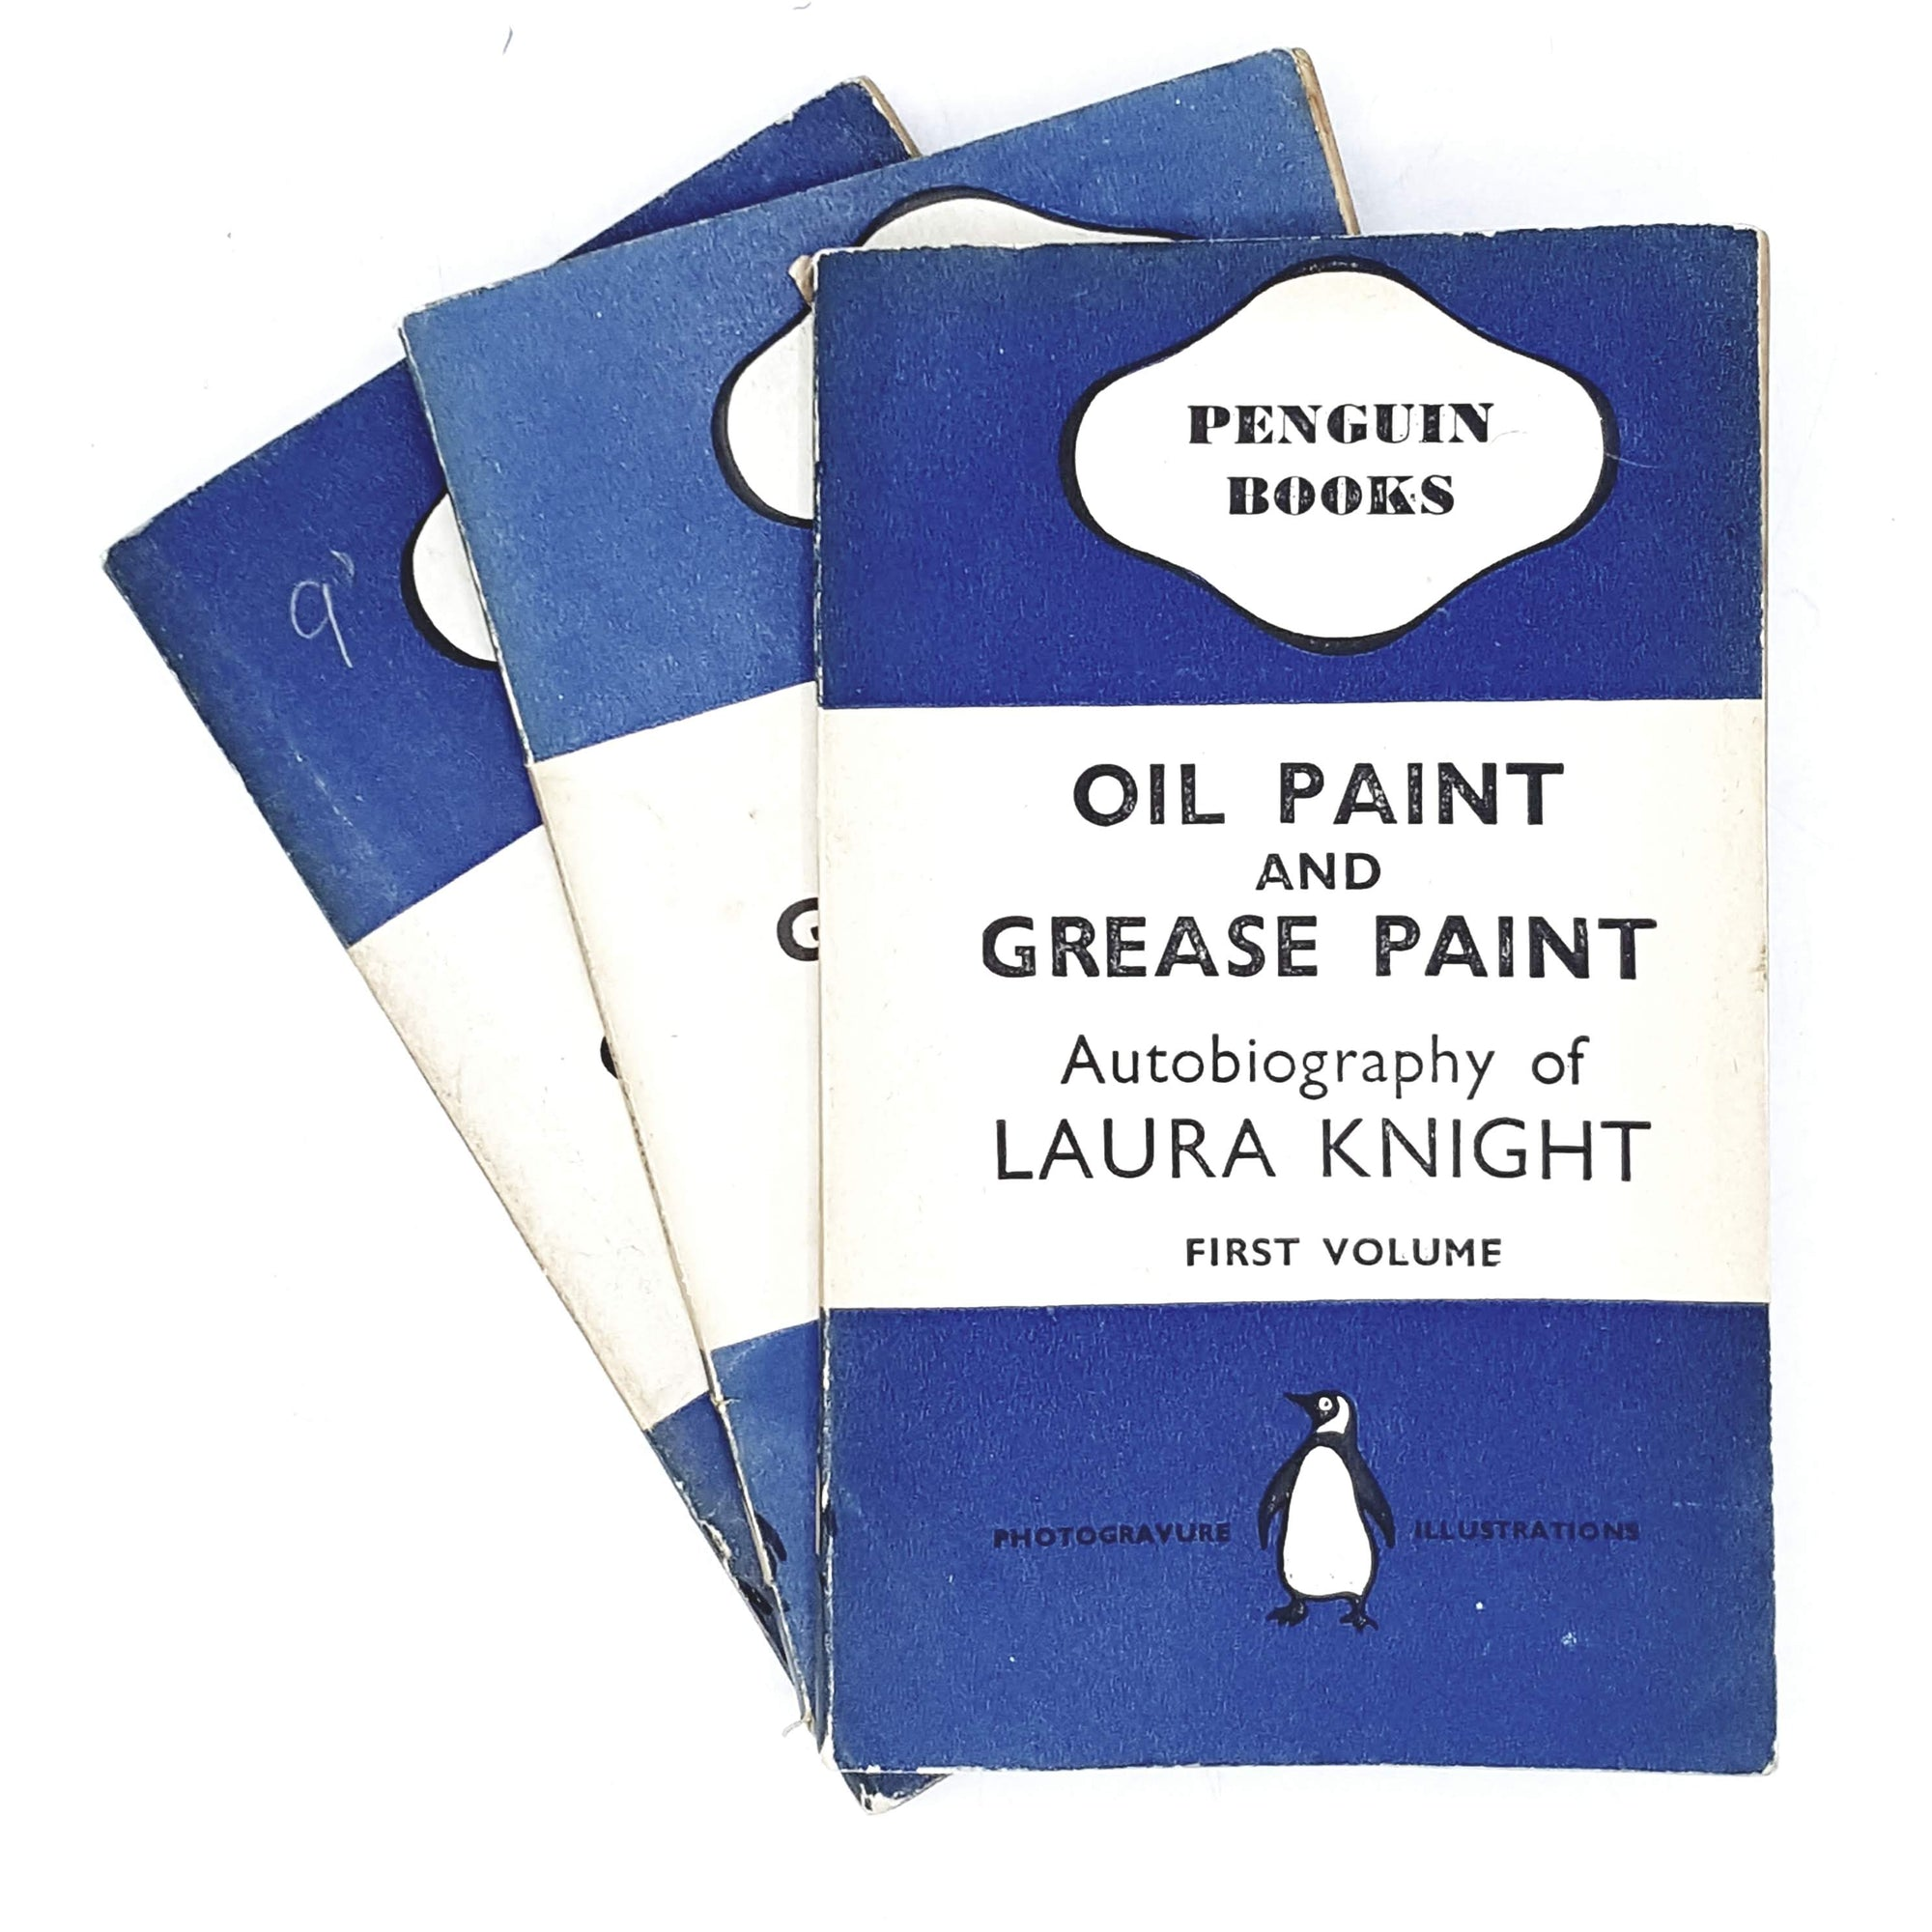 first-edition-penguin-collection-oil-paint-and-grease-paint-by-laura-knight-1941-country-house-library